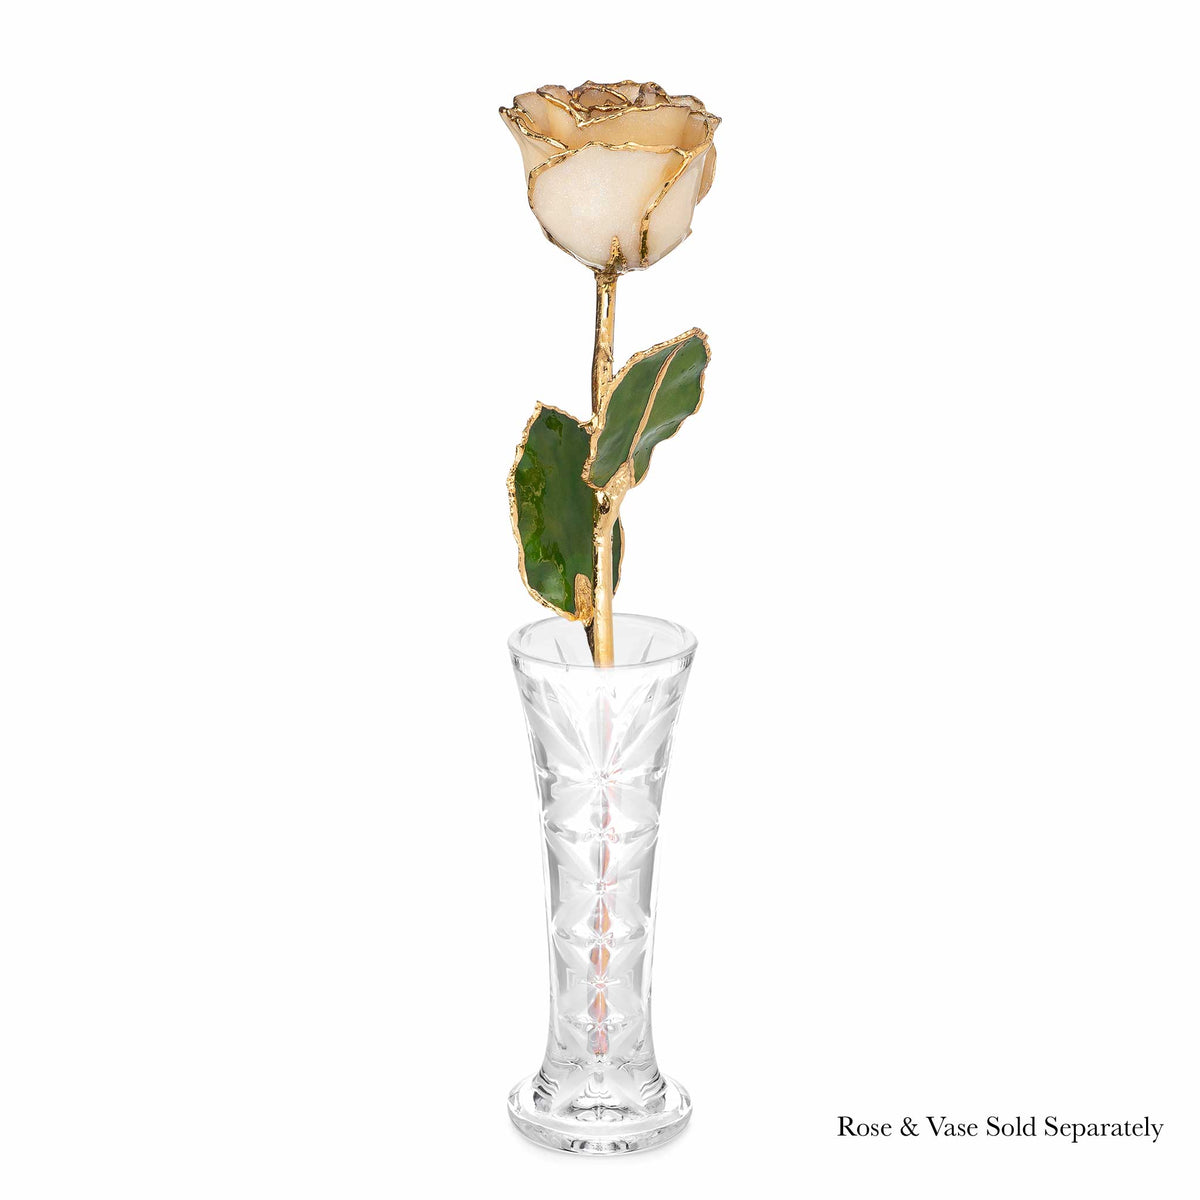 24K Gold Trimmed Forever Rose with Diamond Petals with Sparkles. View of Stem, Leaves, and Rose Petals and Showing Detail of Gold Trim shown in optional crystal vase